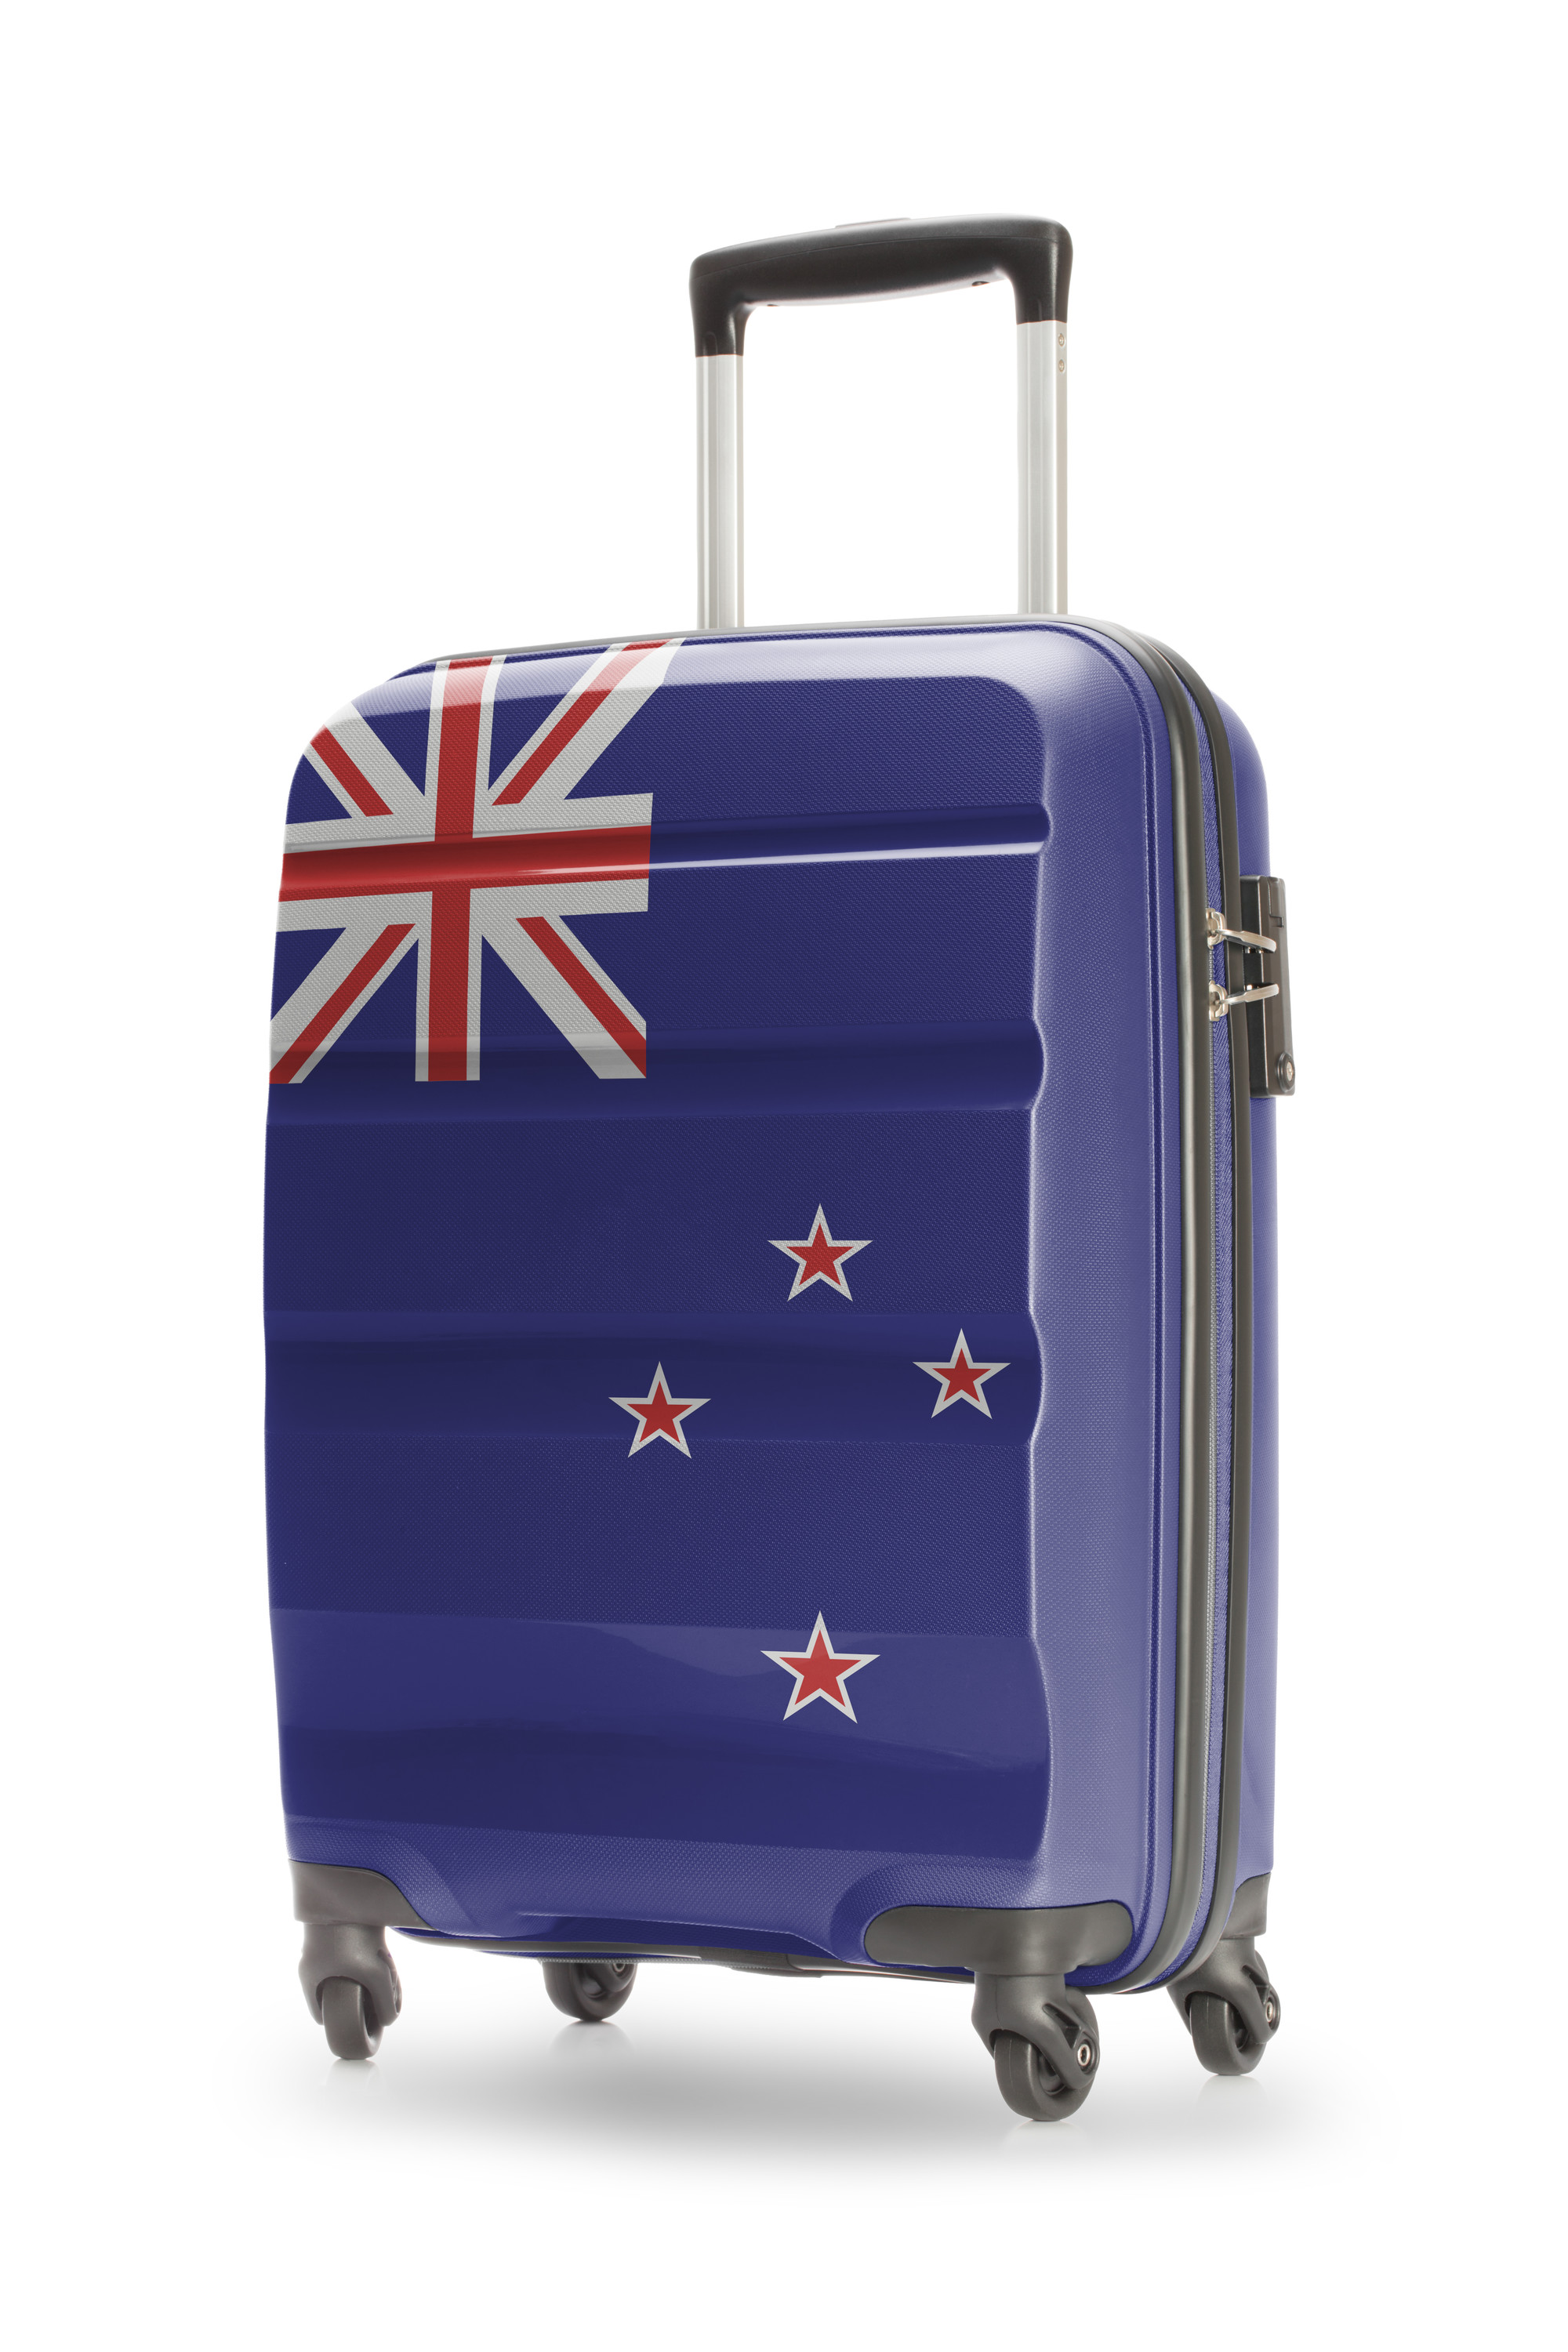 NZ flag on suitcase CSP28997044.jpg